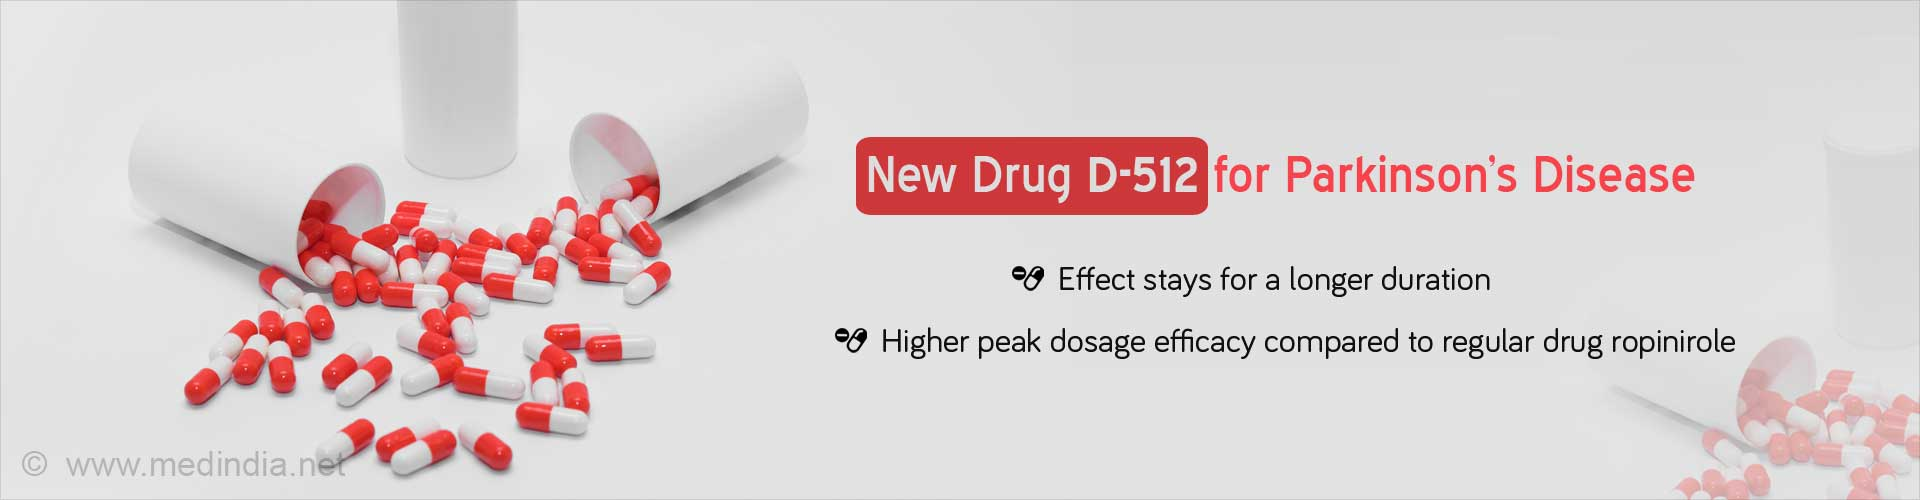 New Drug D-512 for Parkinson's Disease